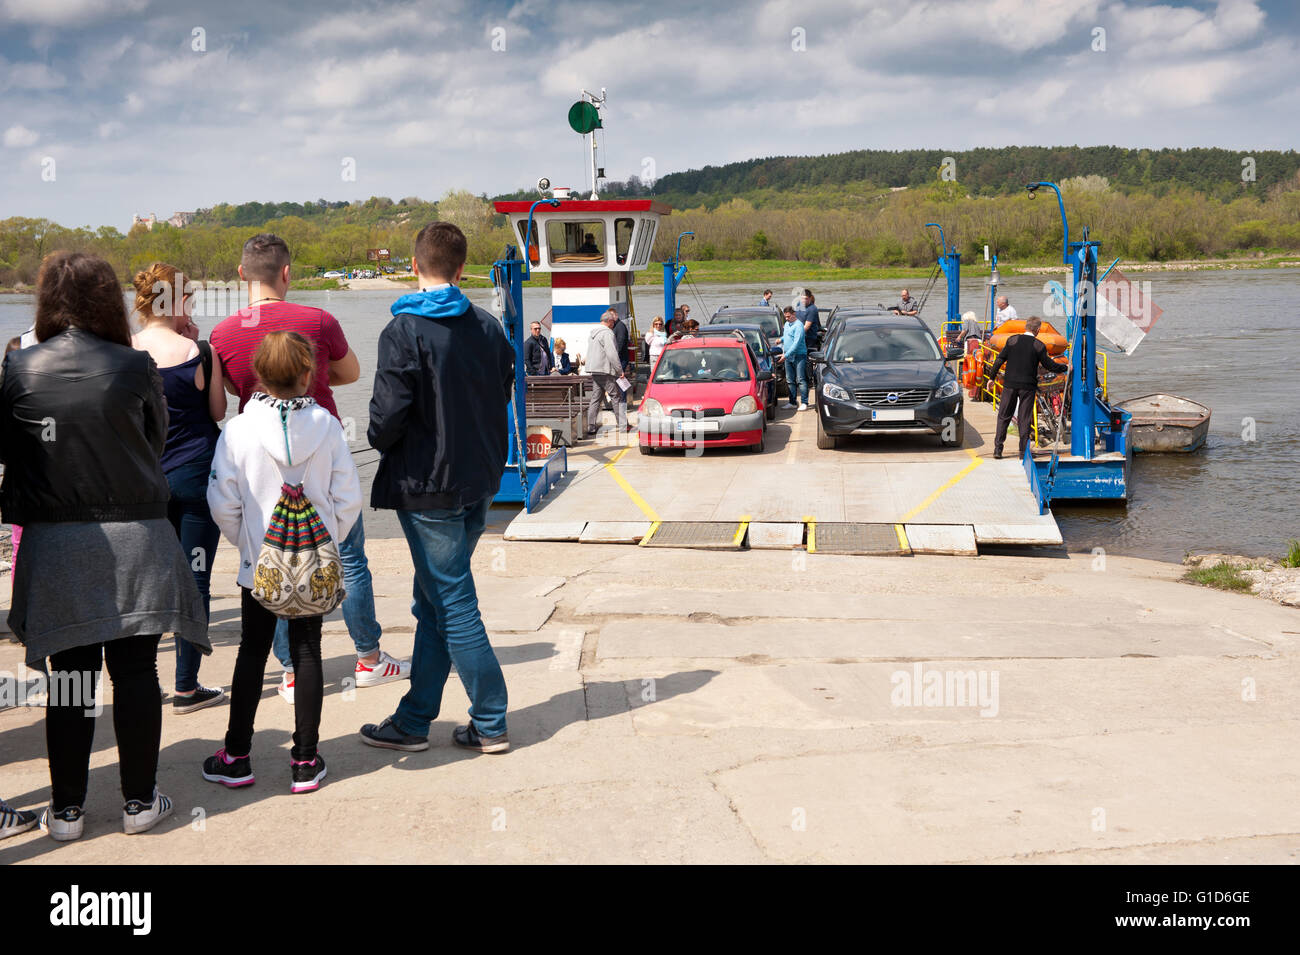 Cable ferry ship unloading, course to Kazimierz Dolny from Janowiec in Poland, Europe, passenger local floating - Stock Image